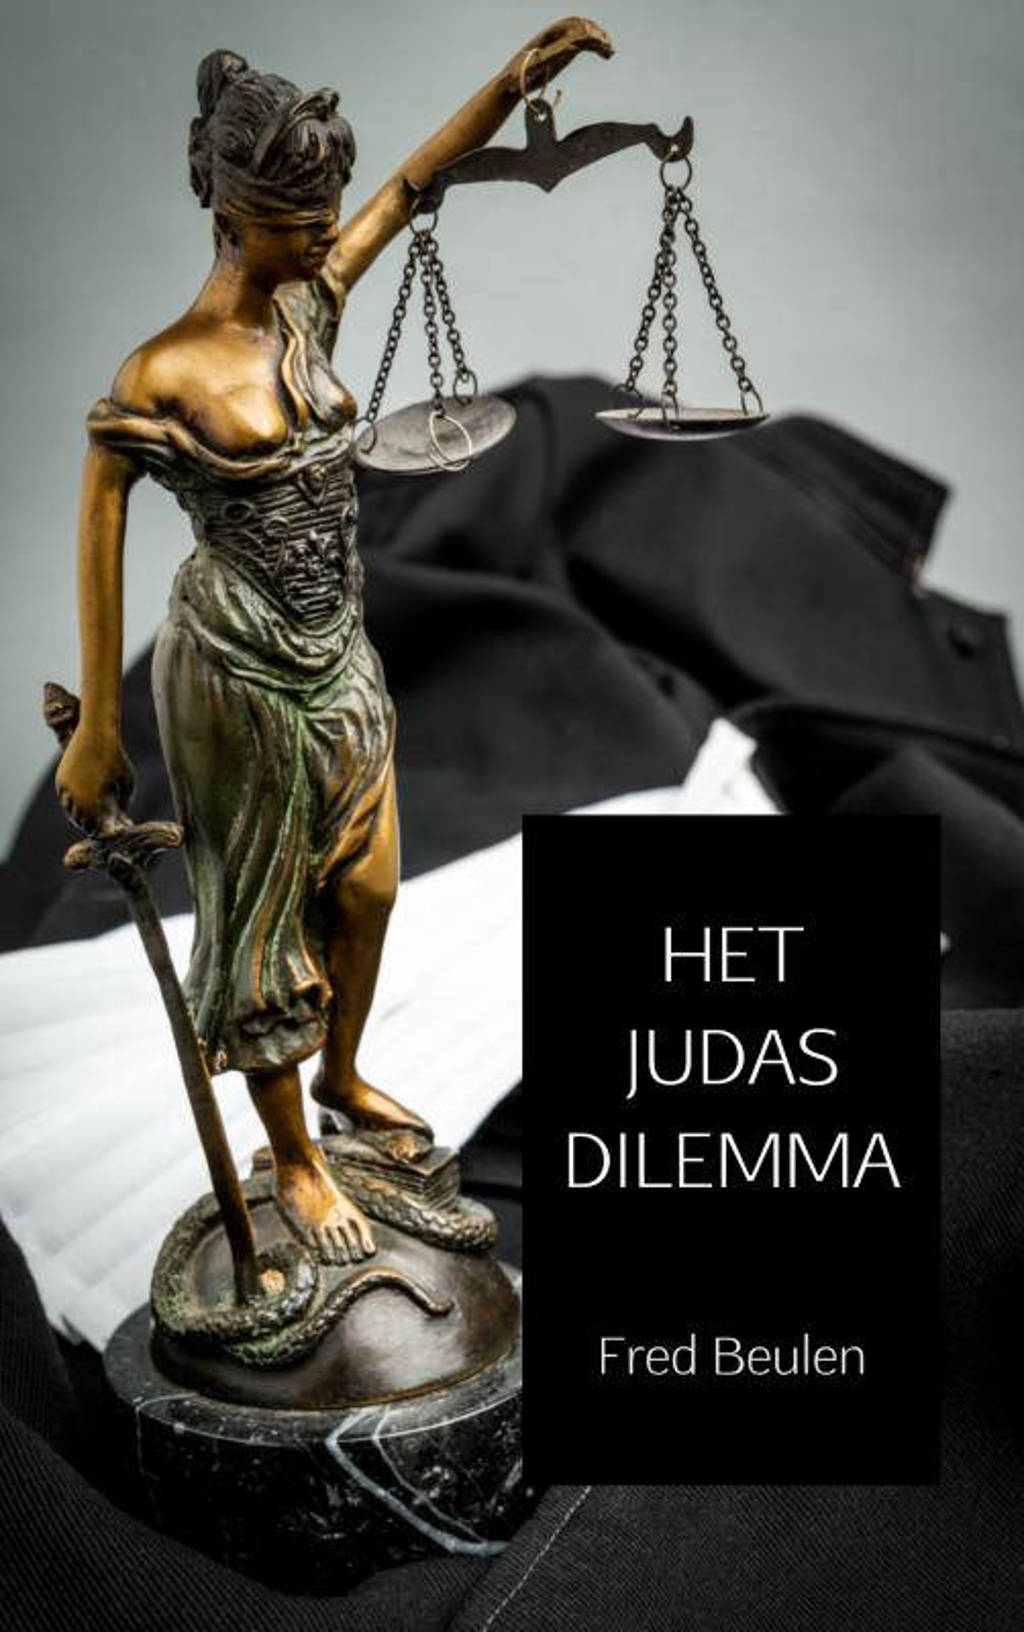 HET JUDAS DILEMMA - Fred Beulen